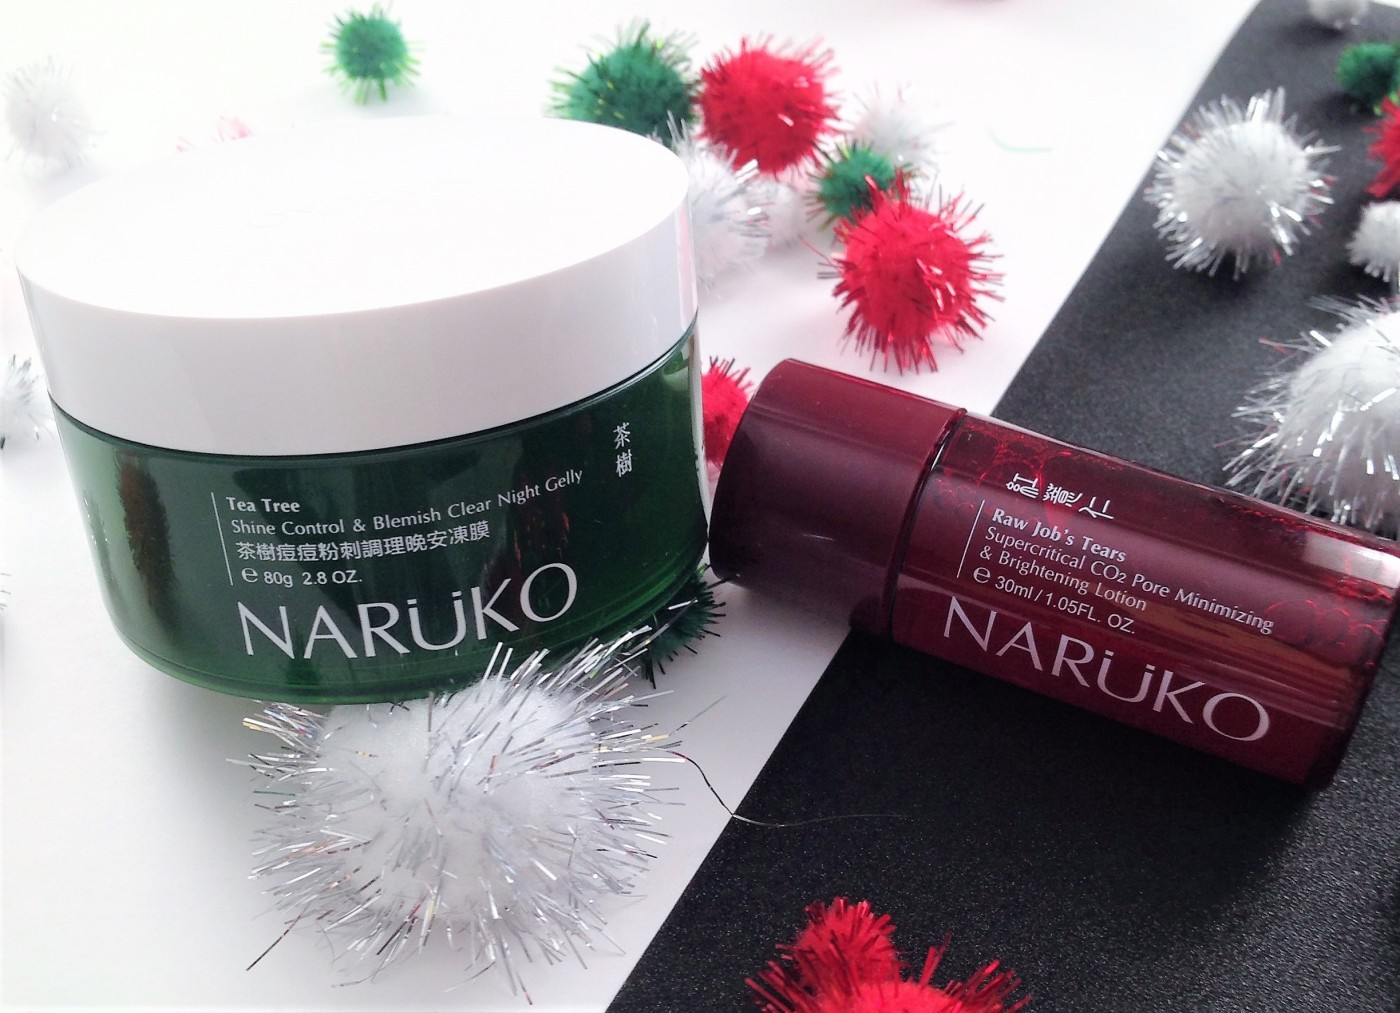 naruko tea tree night gelly and raw jobs tears lotion review